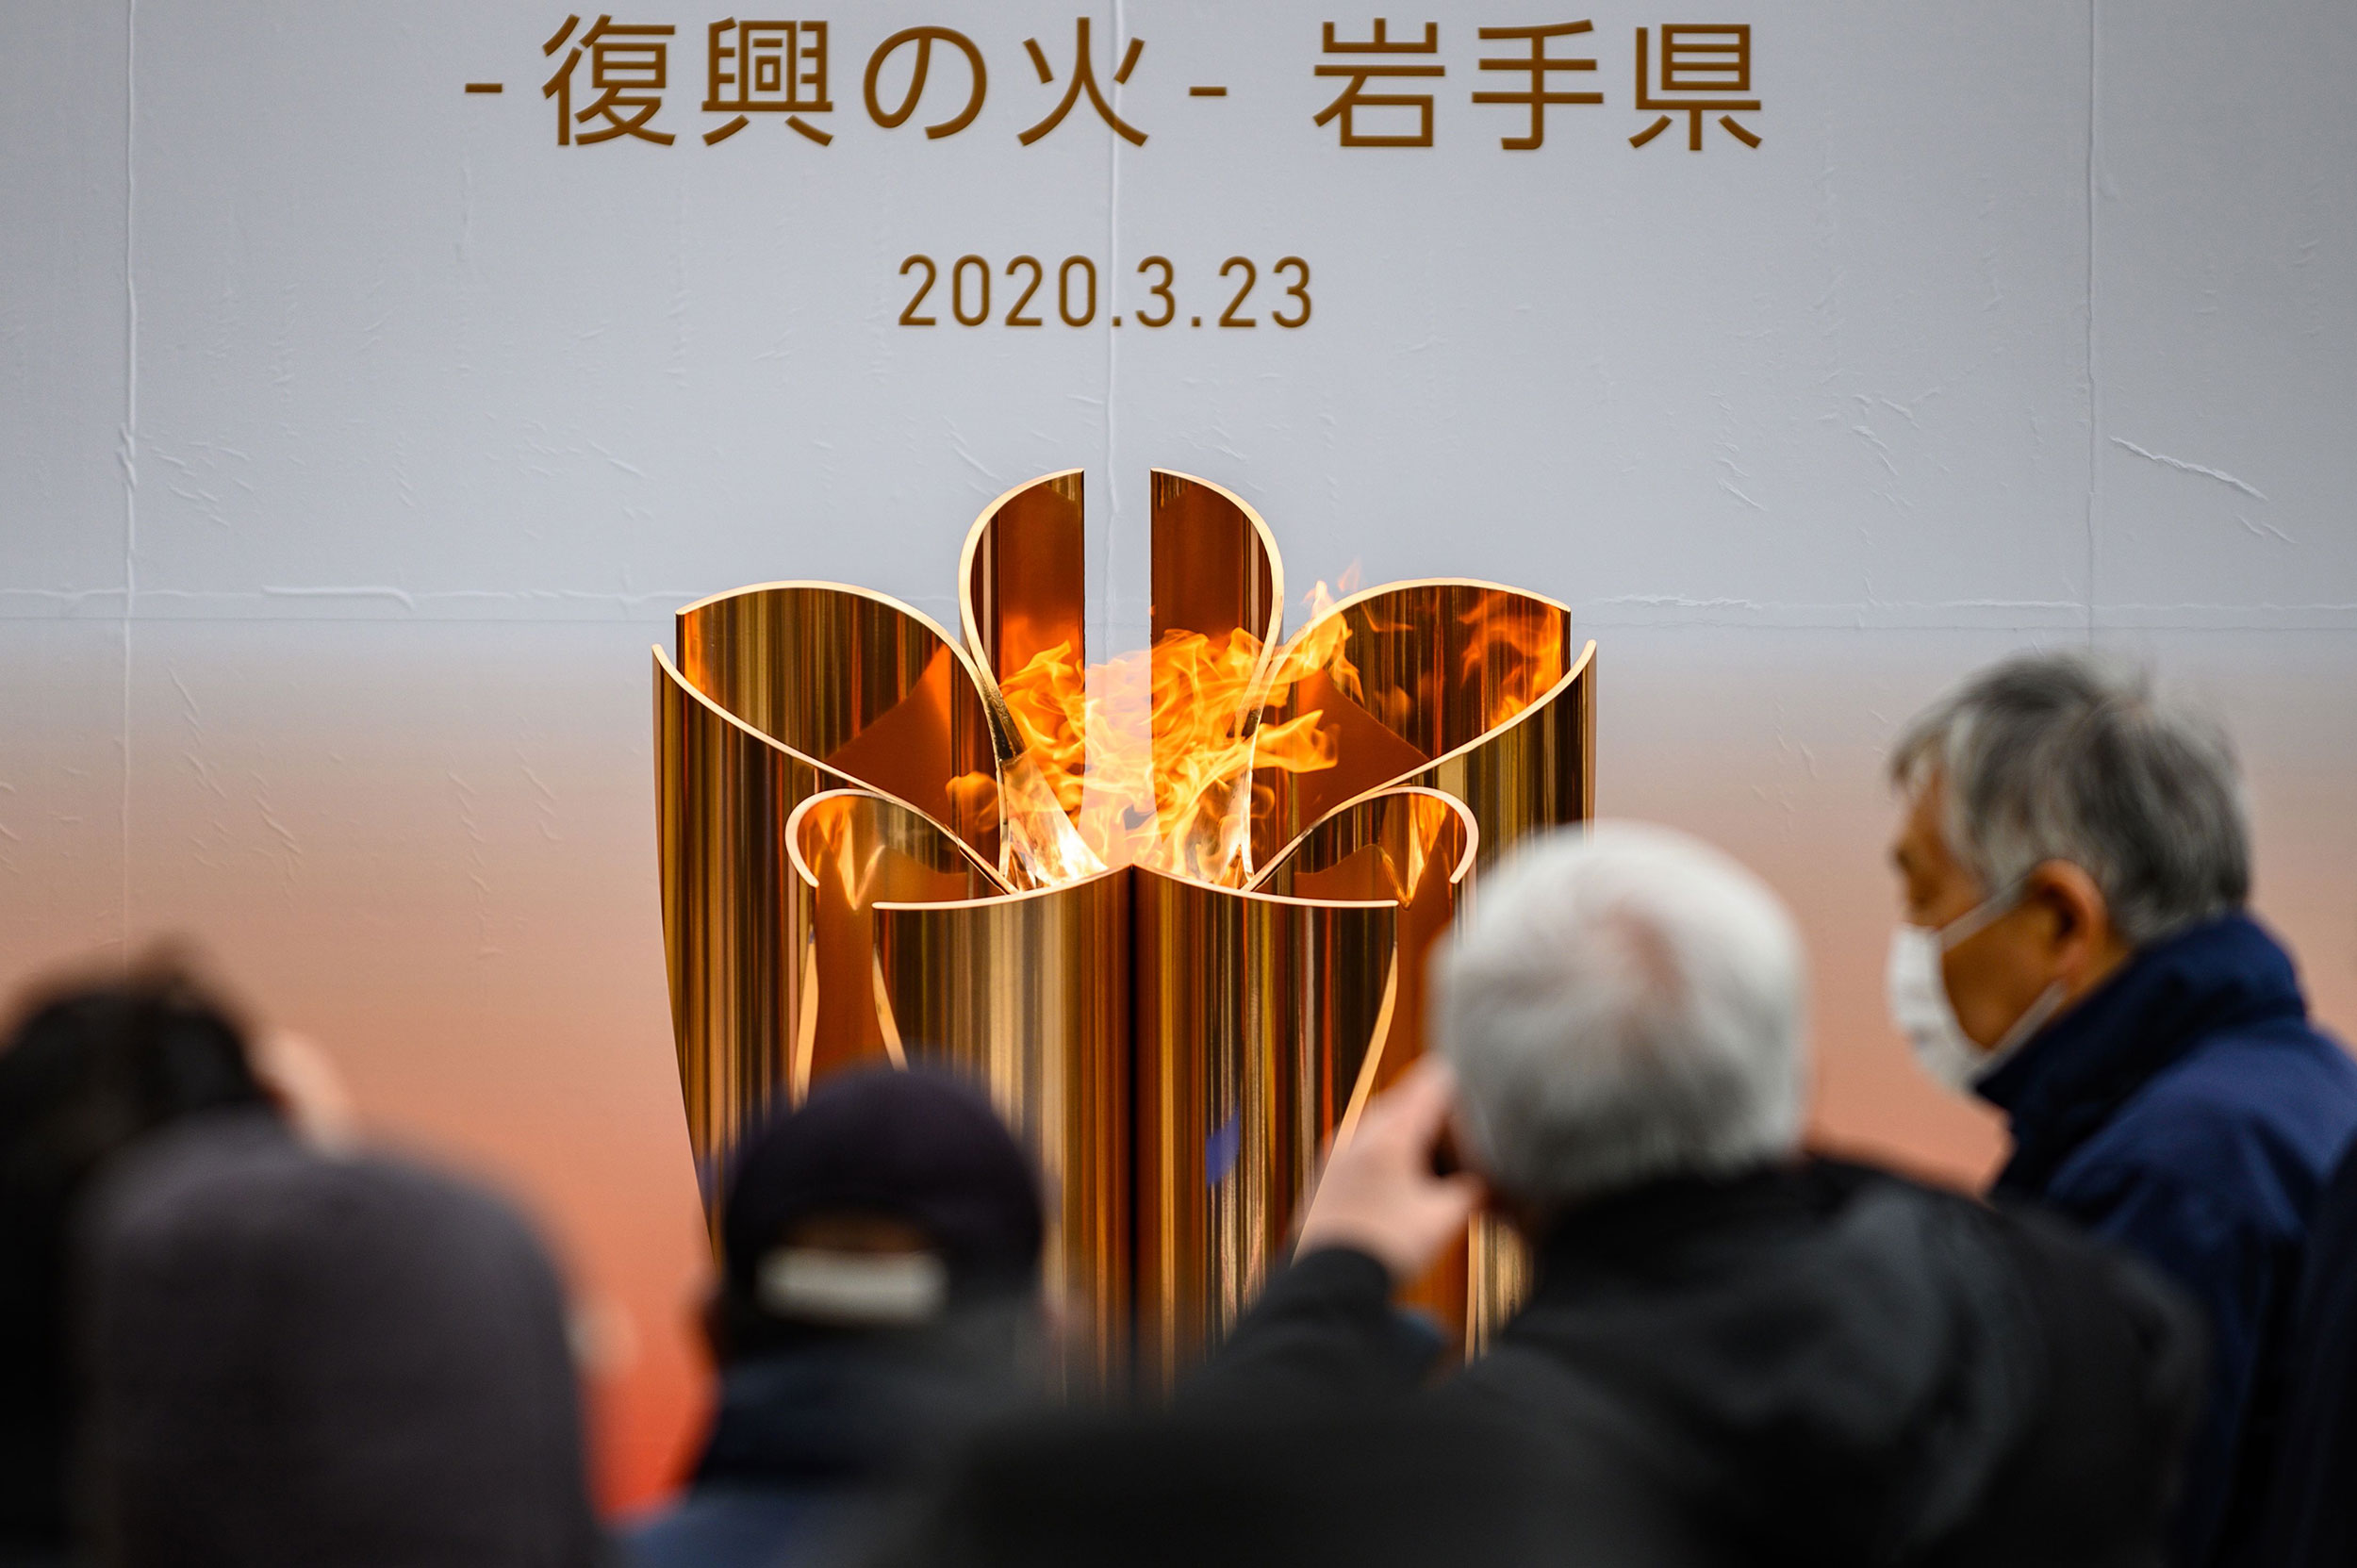 The Tokyo 2020 Olympic flame is displayed at Ofunato, Iwate prefecture on March 23.